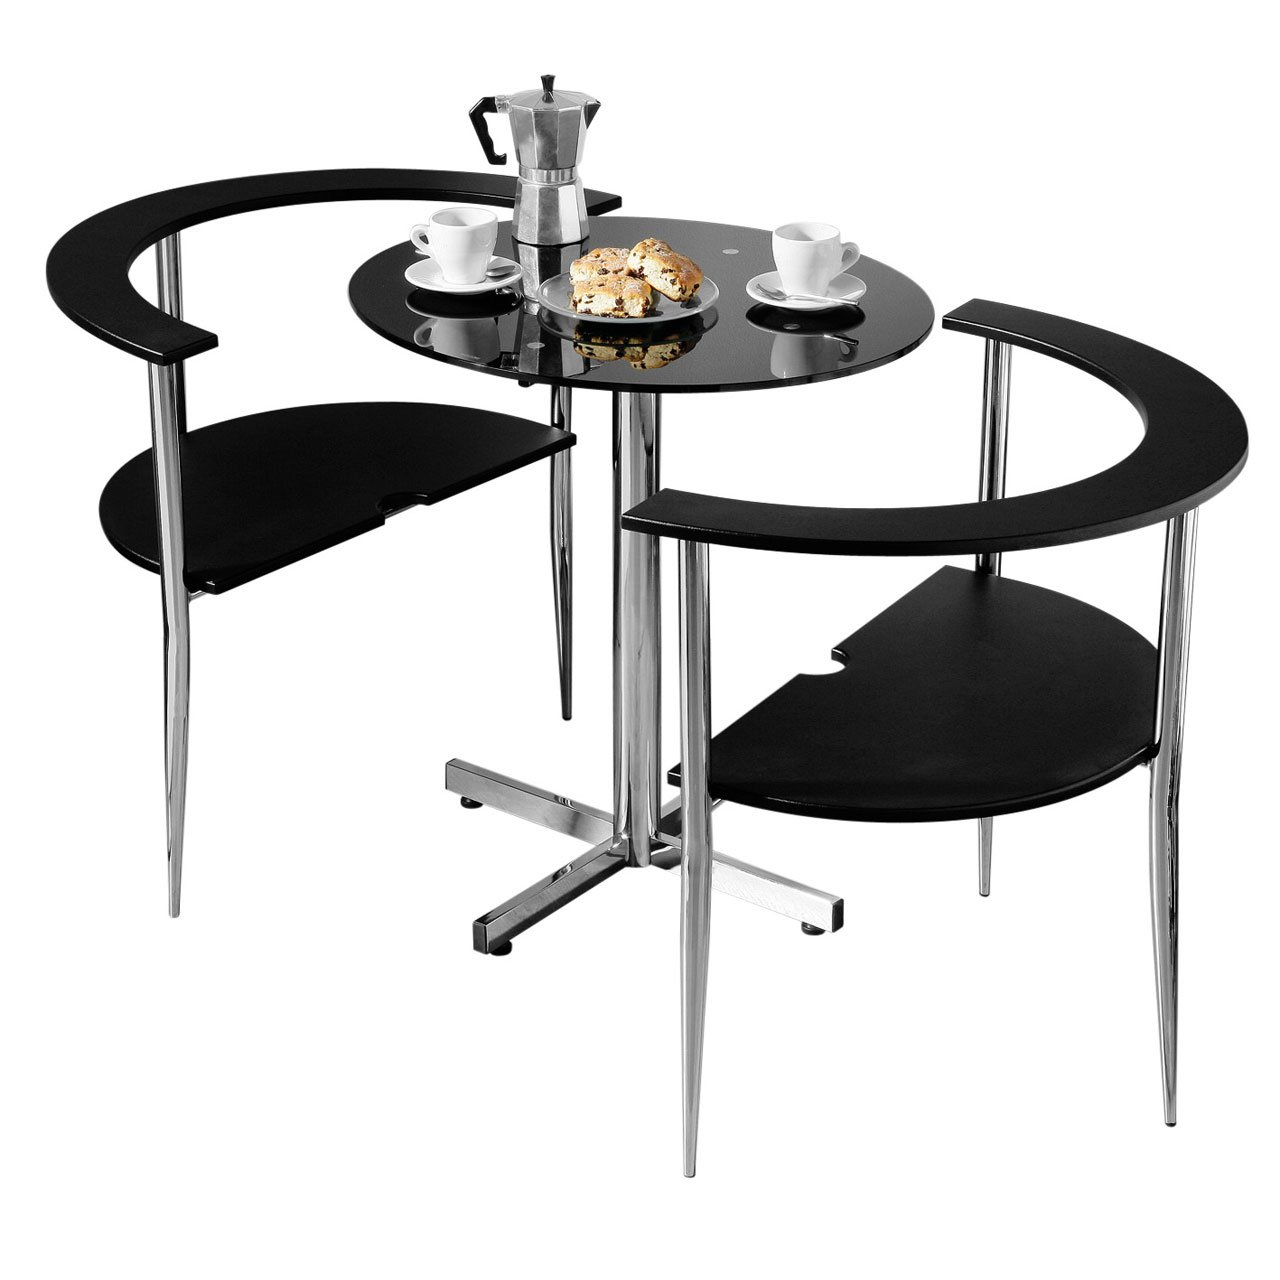 Marvelous 3pc BLACK GLASS LOVE DINING TABLE SET WITH 2 CHAIRS: Amazon.co.uk: Kitchen  U0026 Home